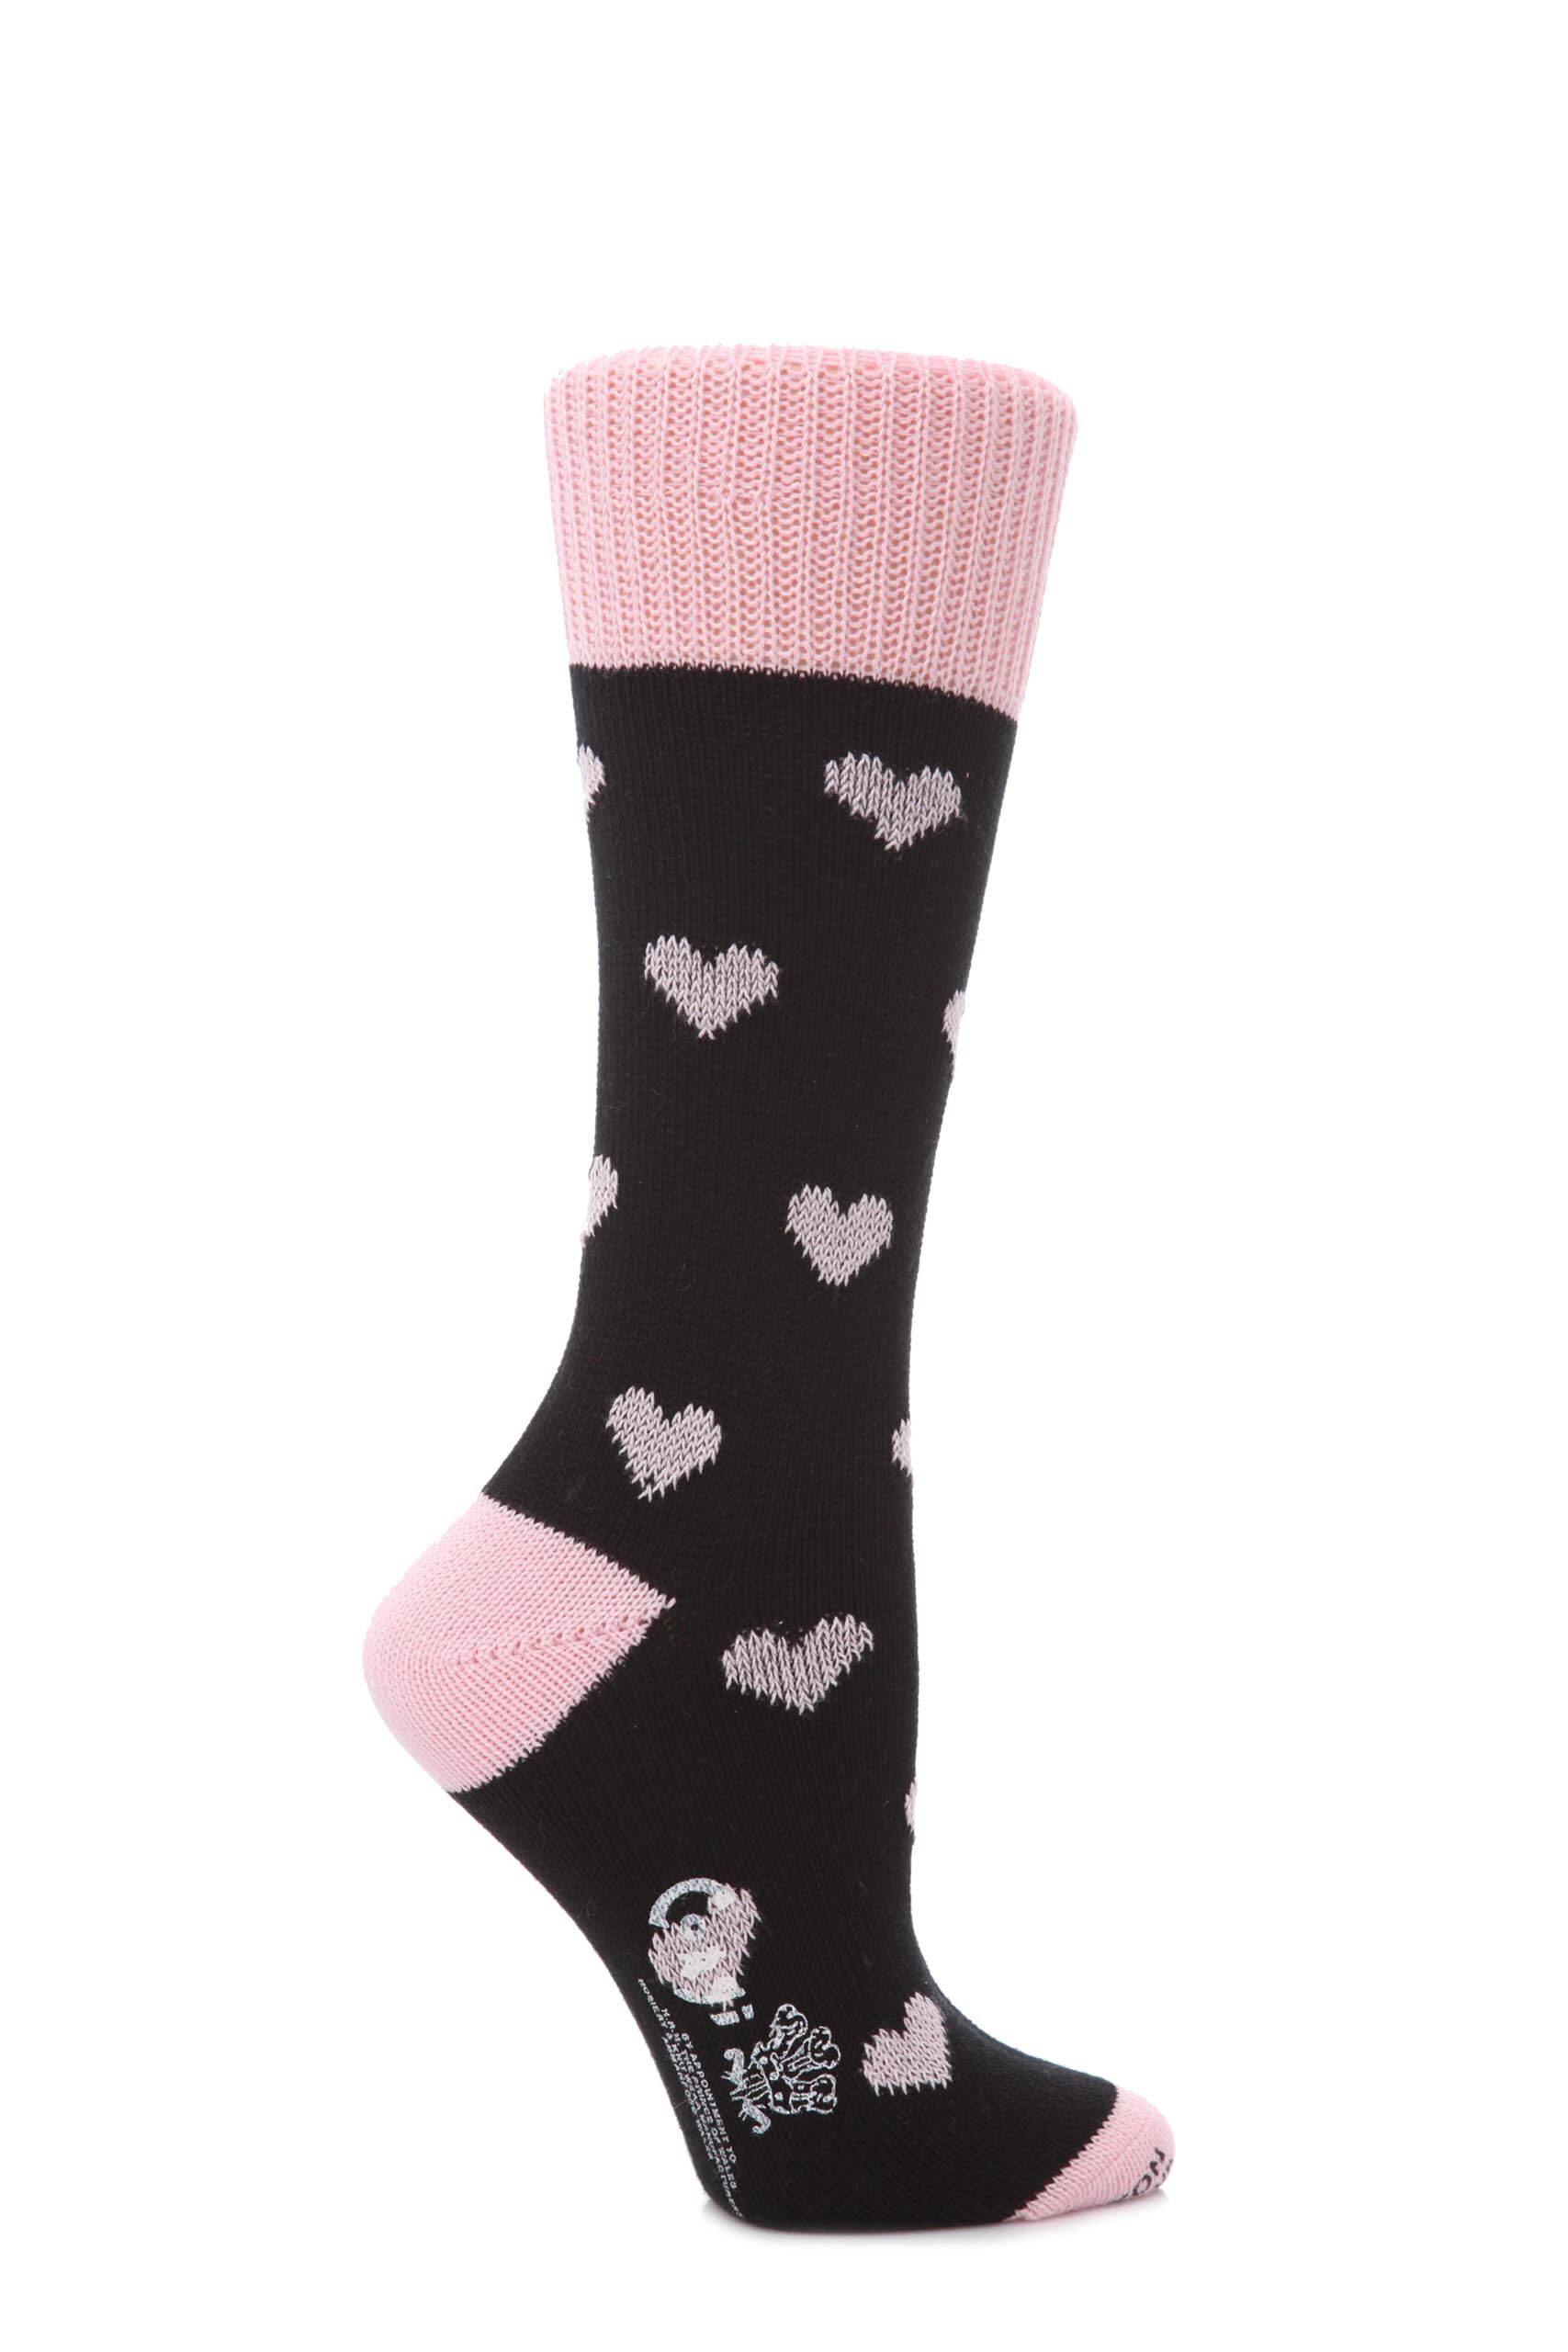 Image of 1 Pair Black 100% Cotton Hearts Socks Ladies 4-8 Ladies - Corgi